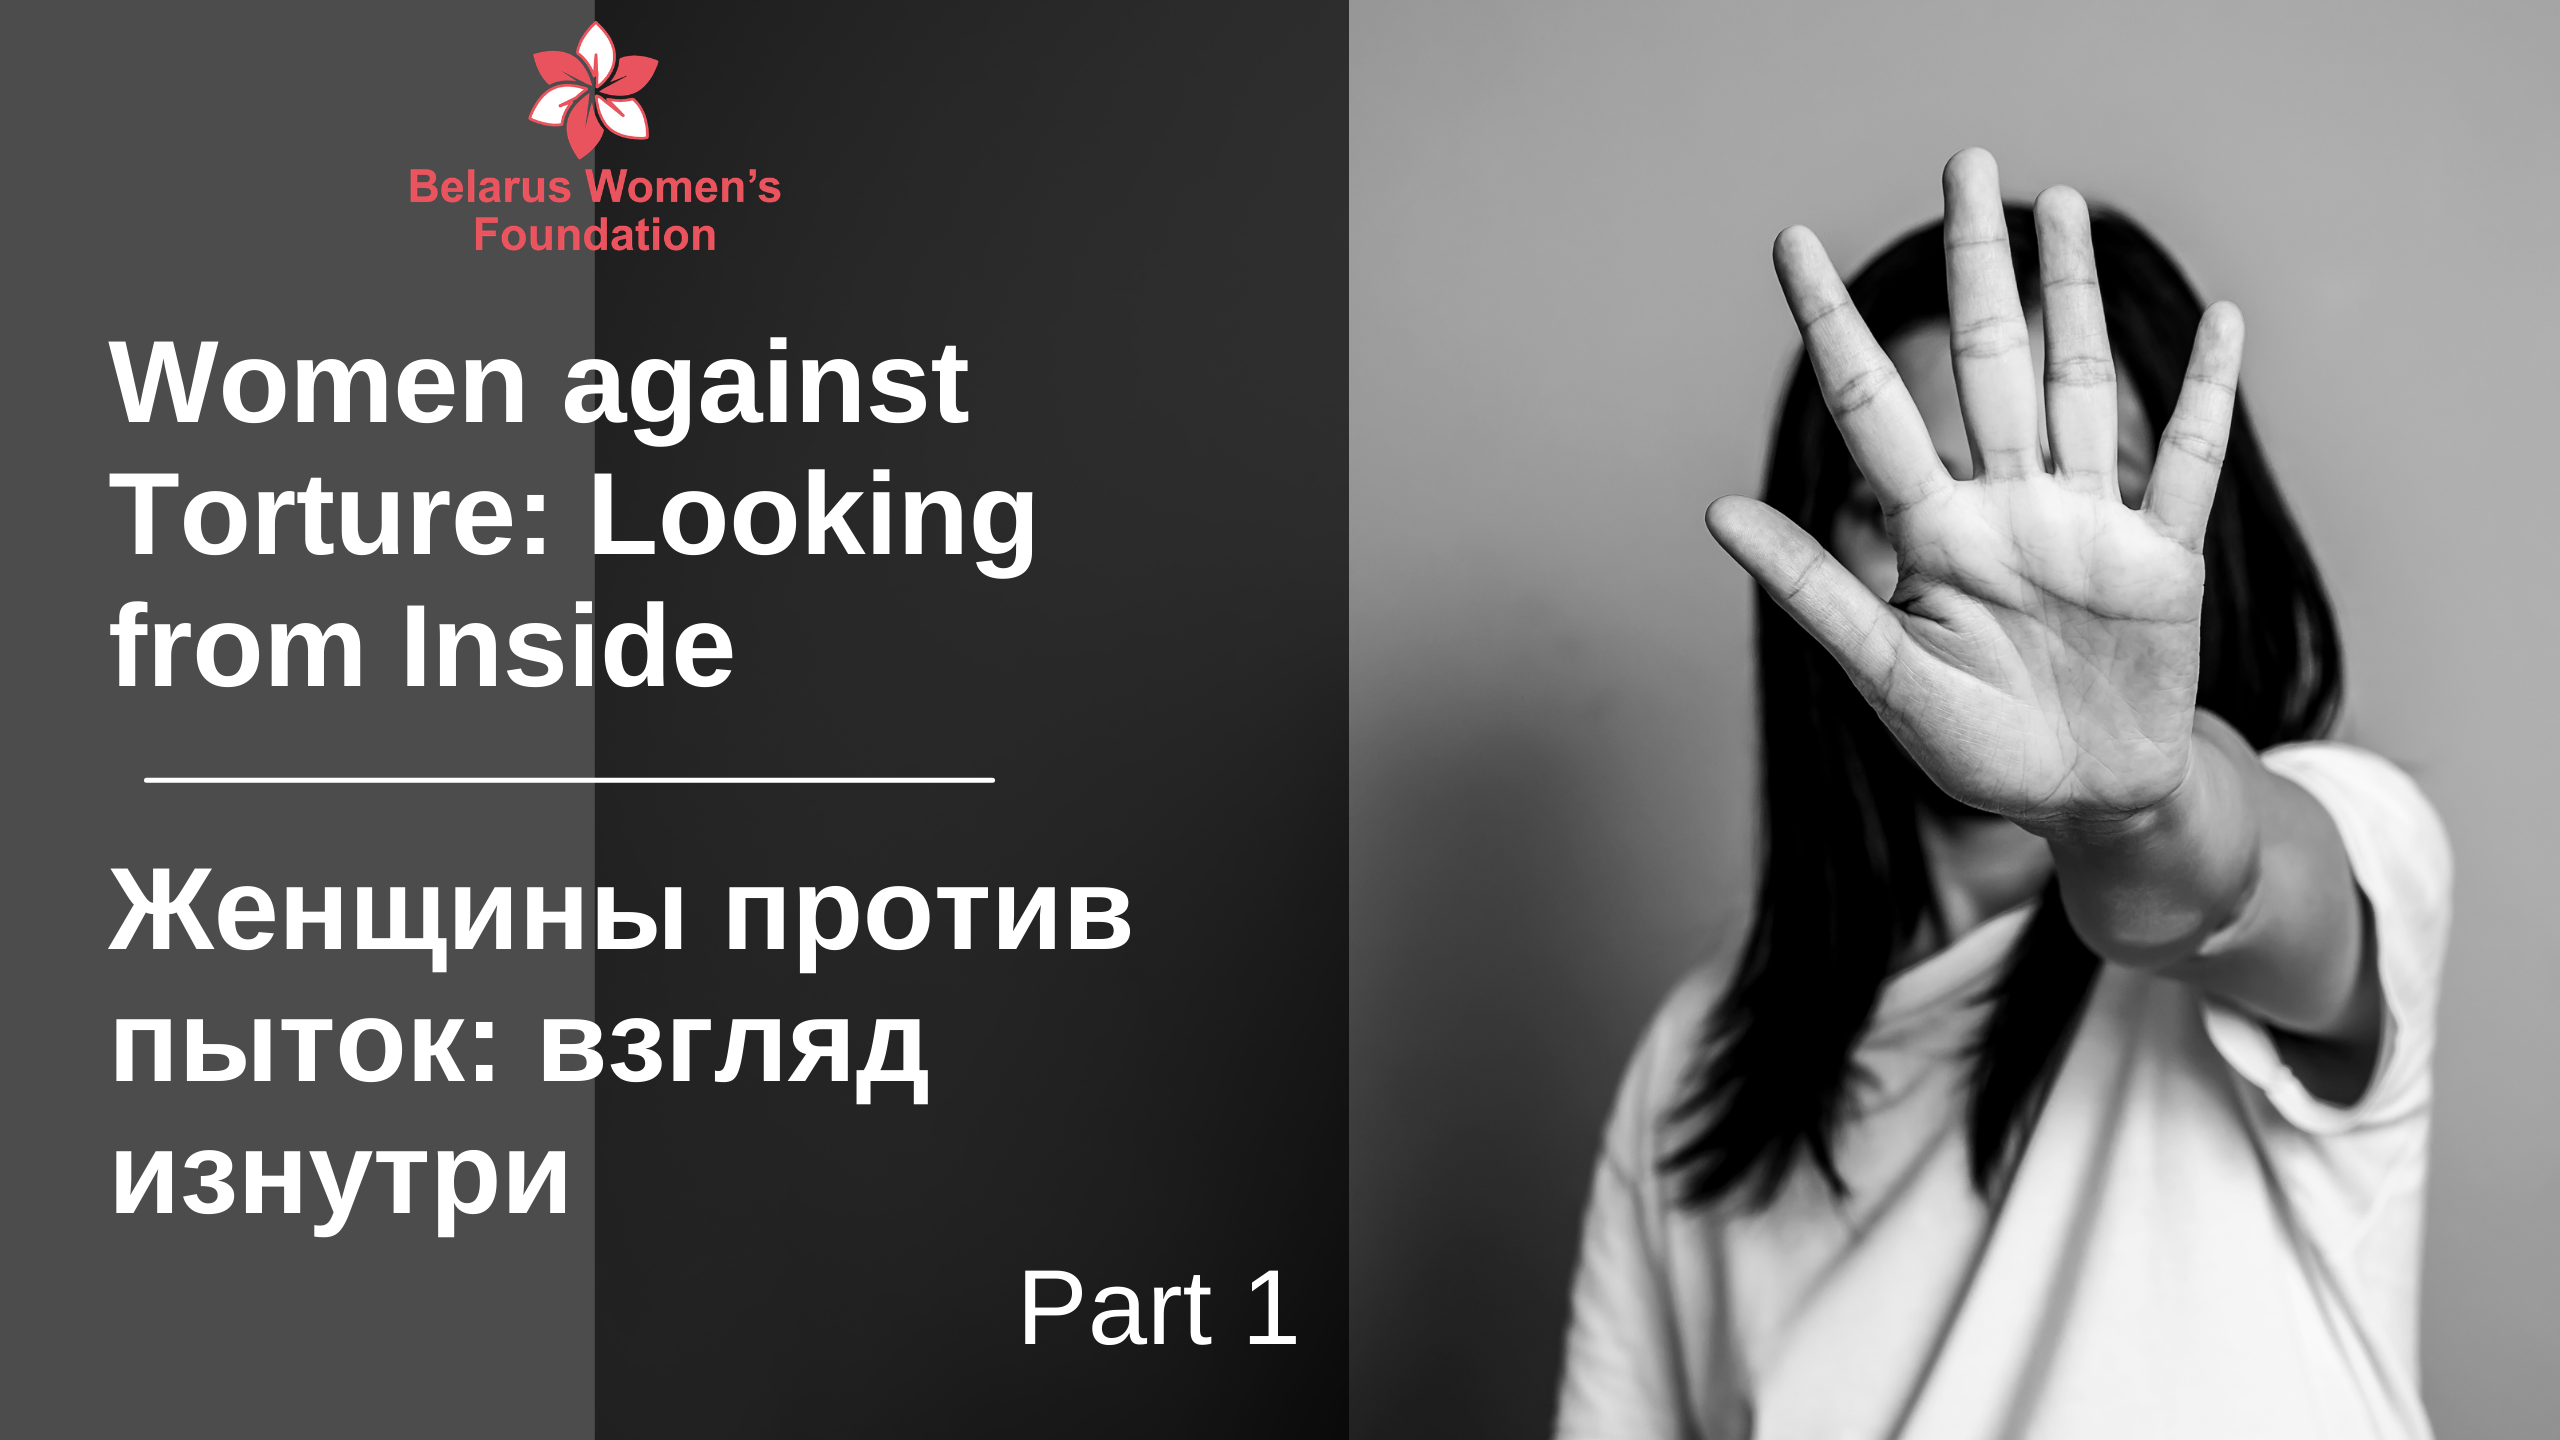 Part 1. Women against Torture: Looking from Inside